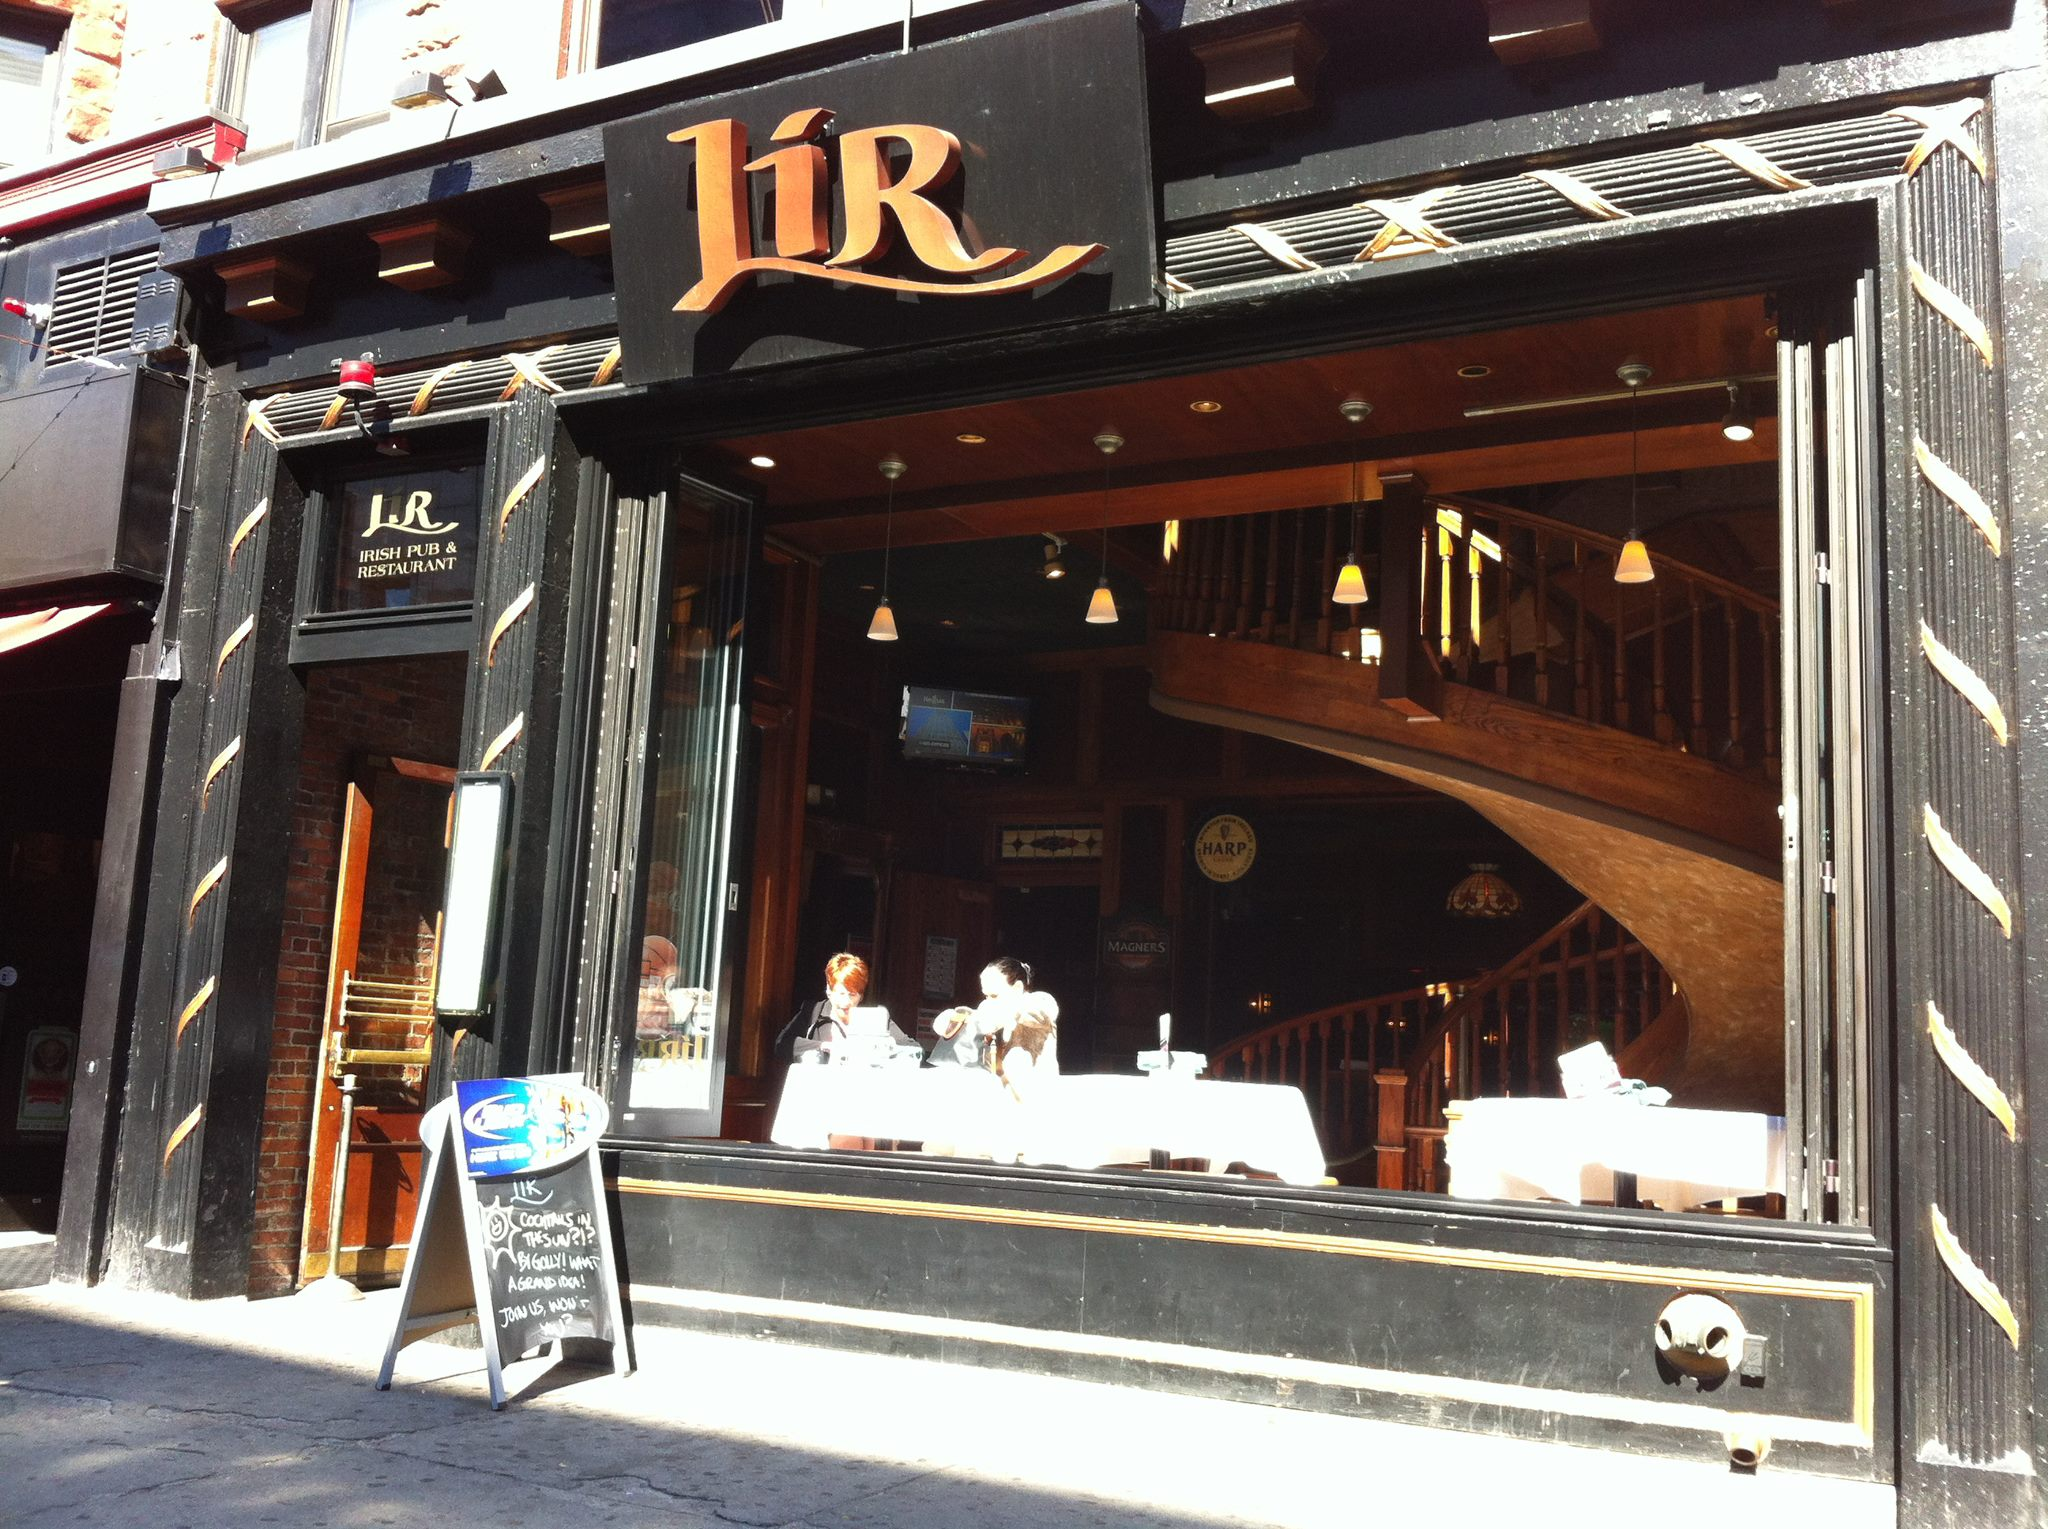 """Exterior of a bar with signage reading """"Lir."""" The exterior is dark wood, and a giant nearly floor-to-ceiling window takes up most of the space, open to the sidewalk."""